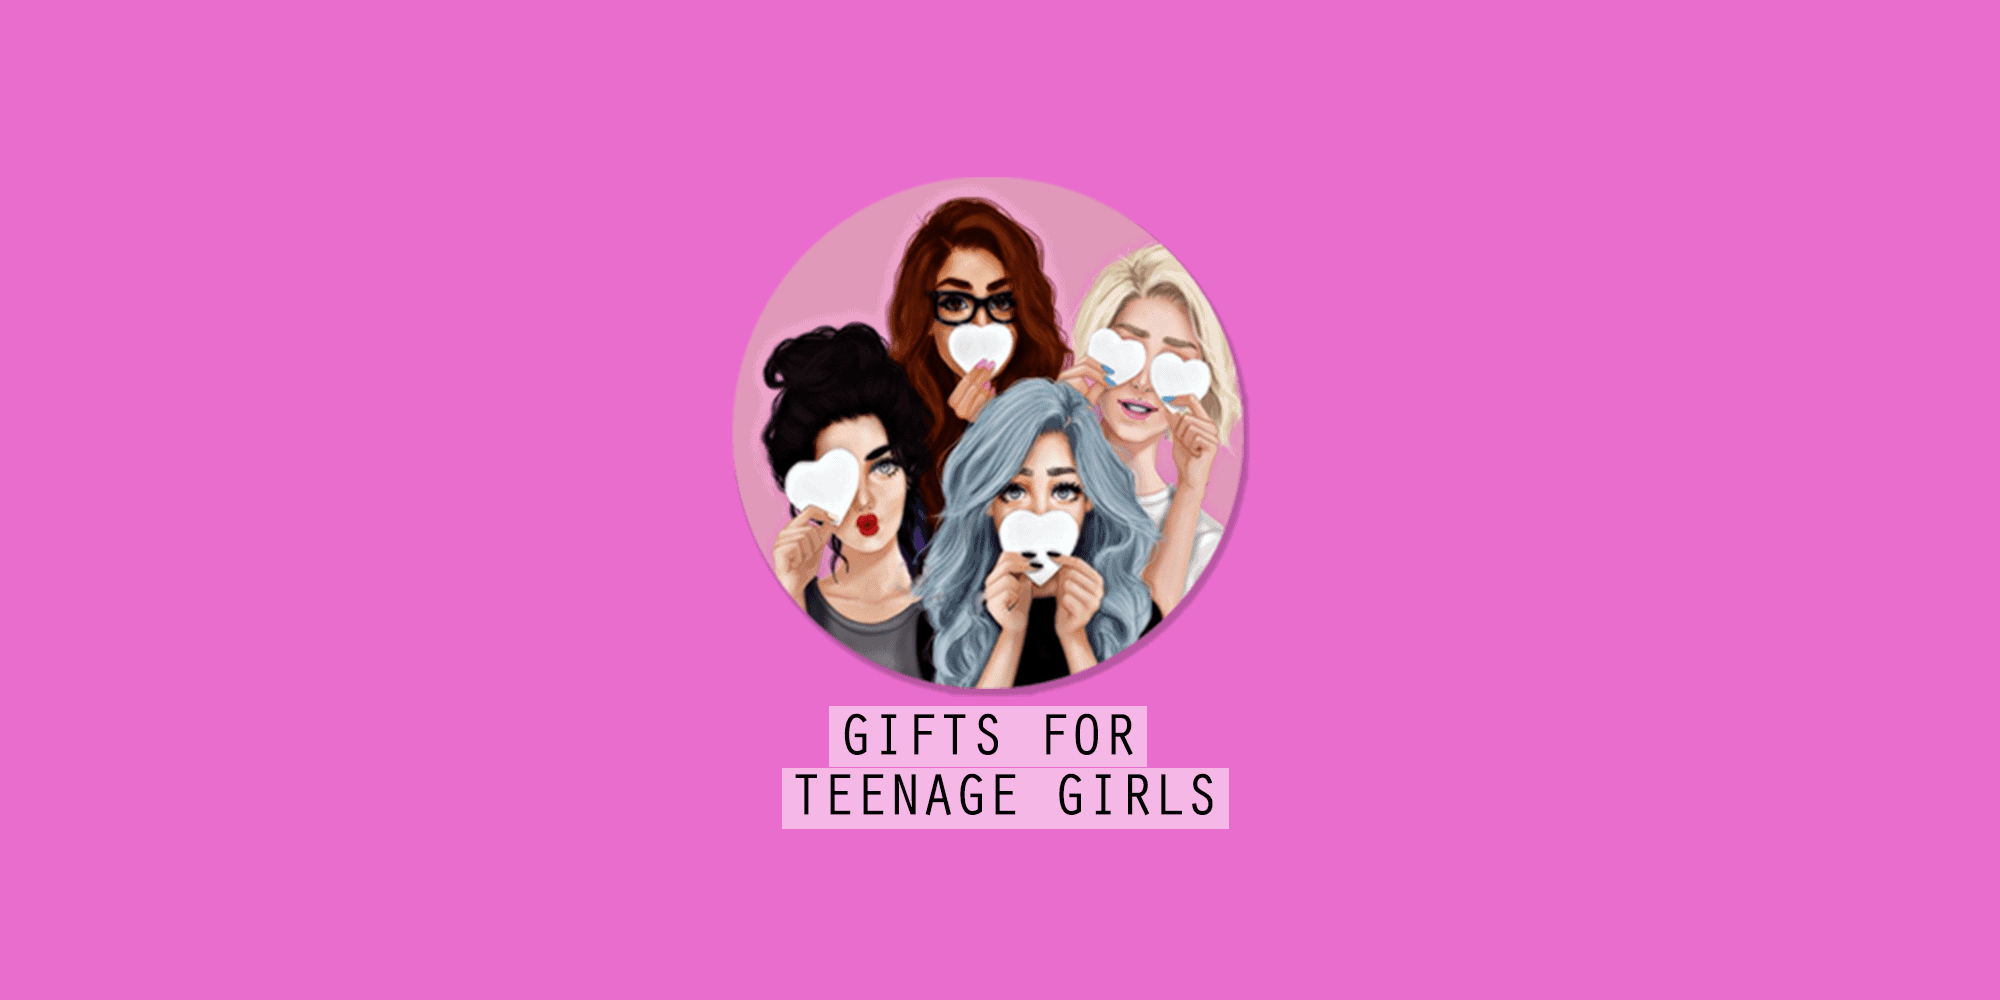 Best Gifts For Teenage Girls: 77+ Awesome Ideas for 2021